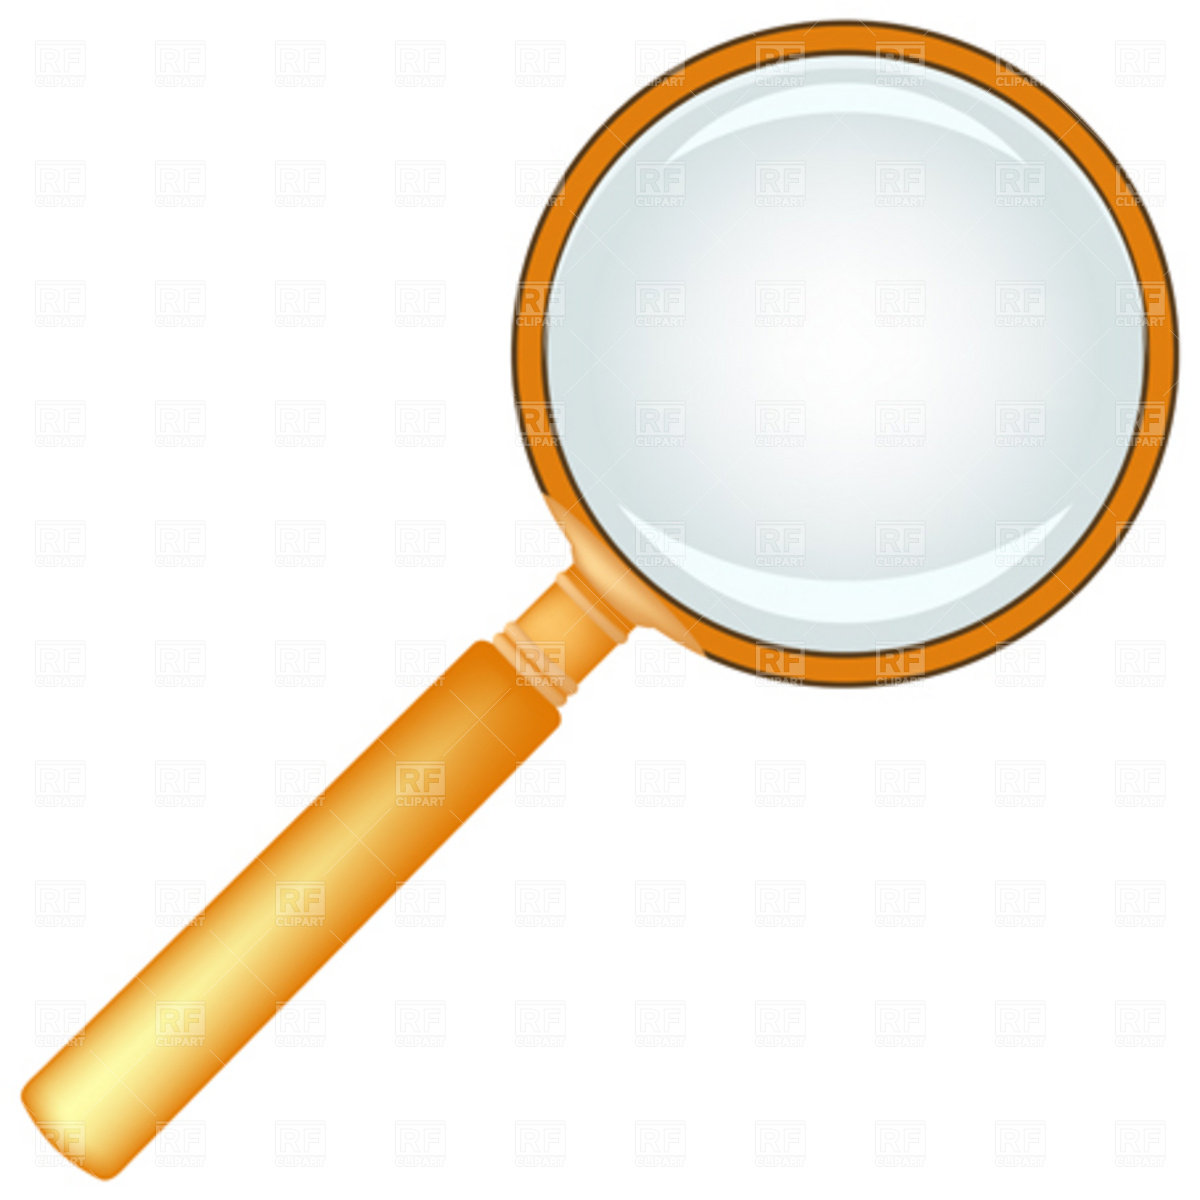 magnifying%20glass%20clipart%20free